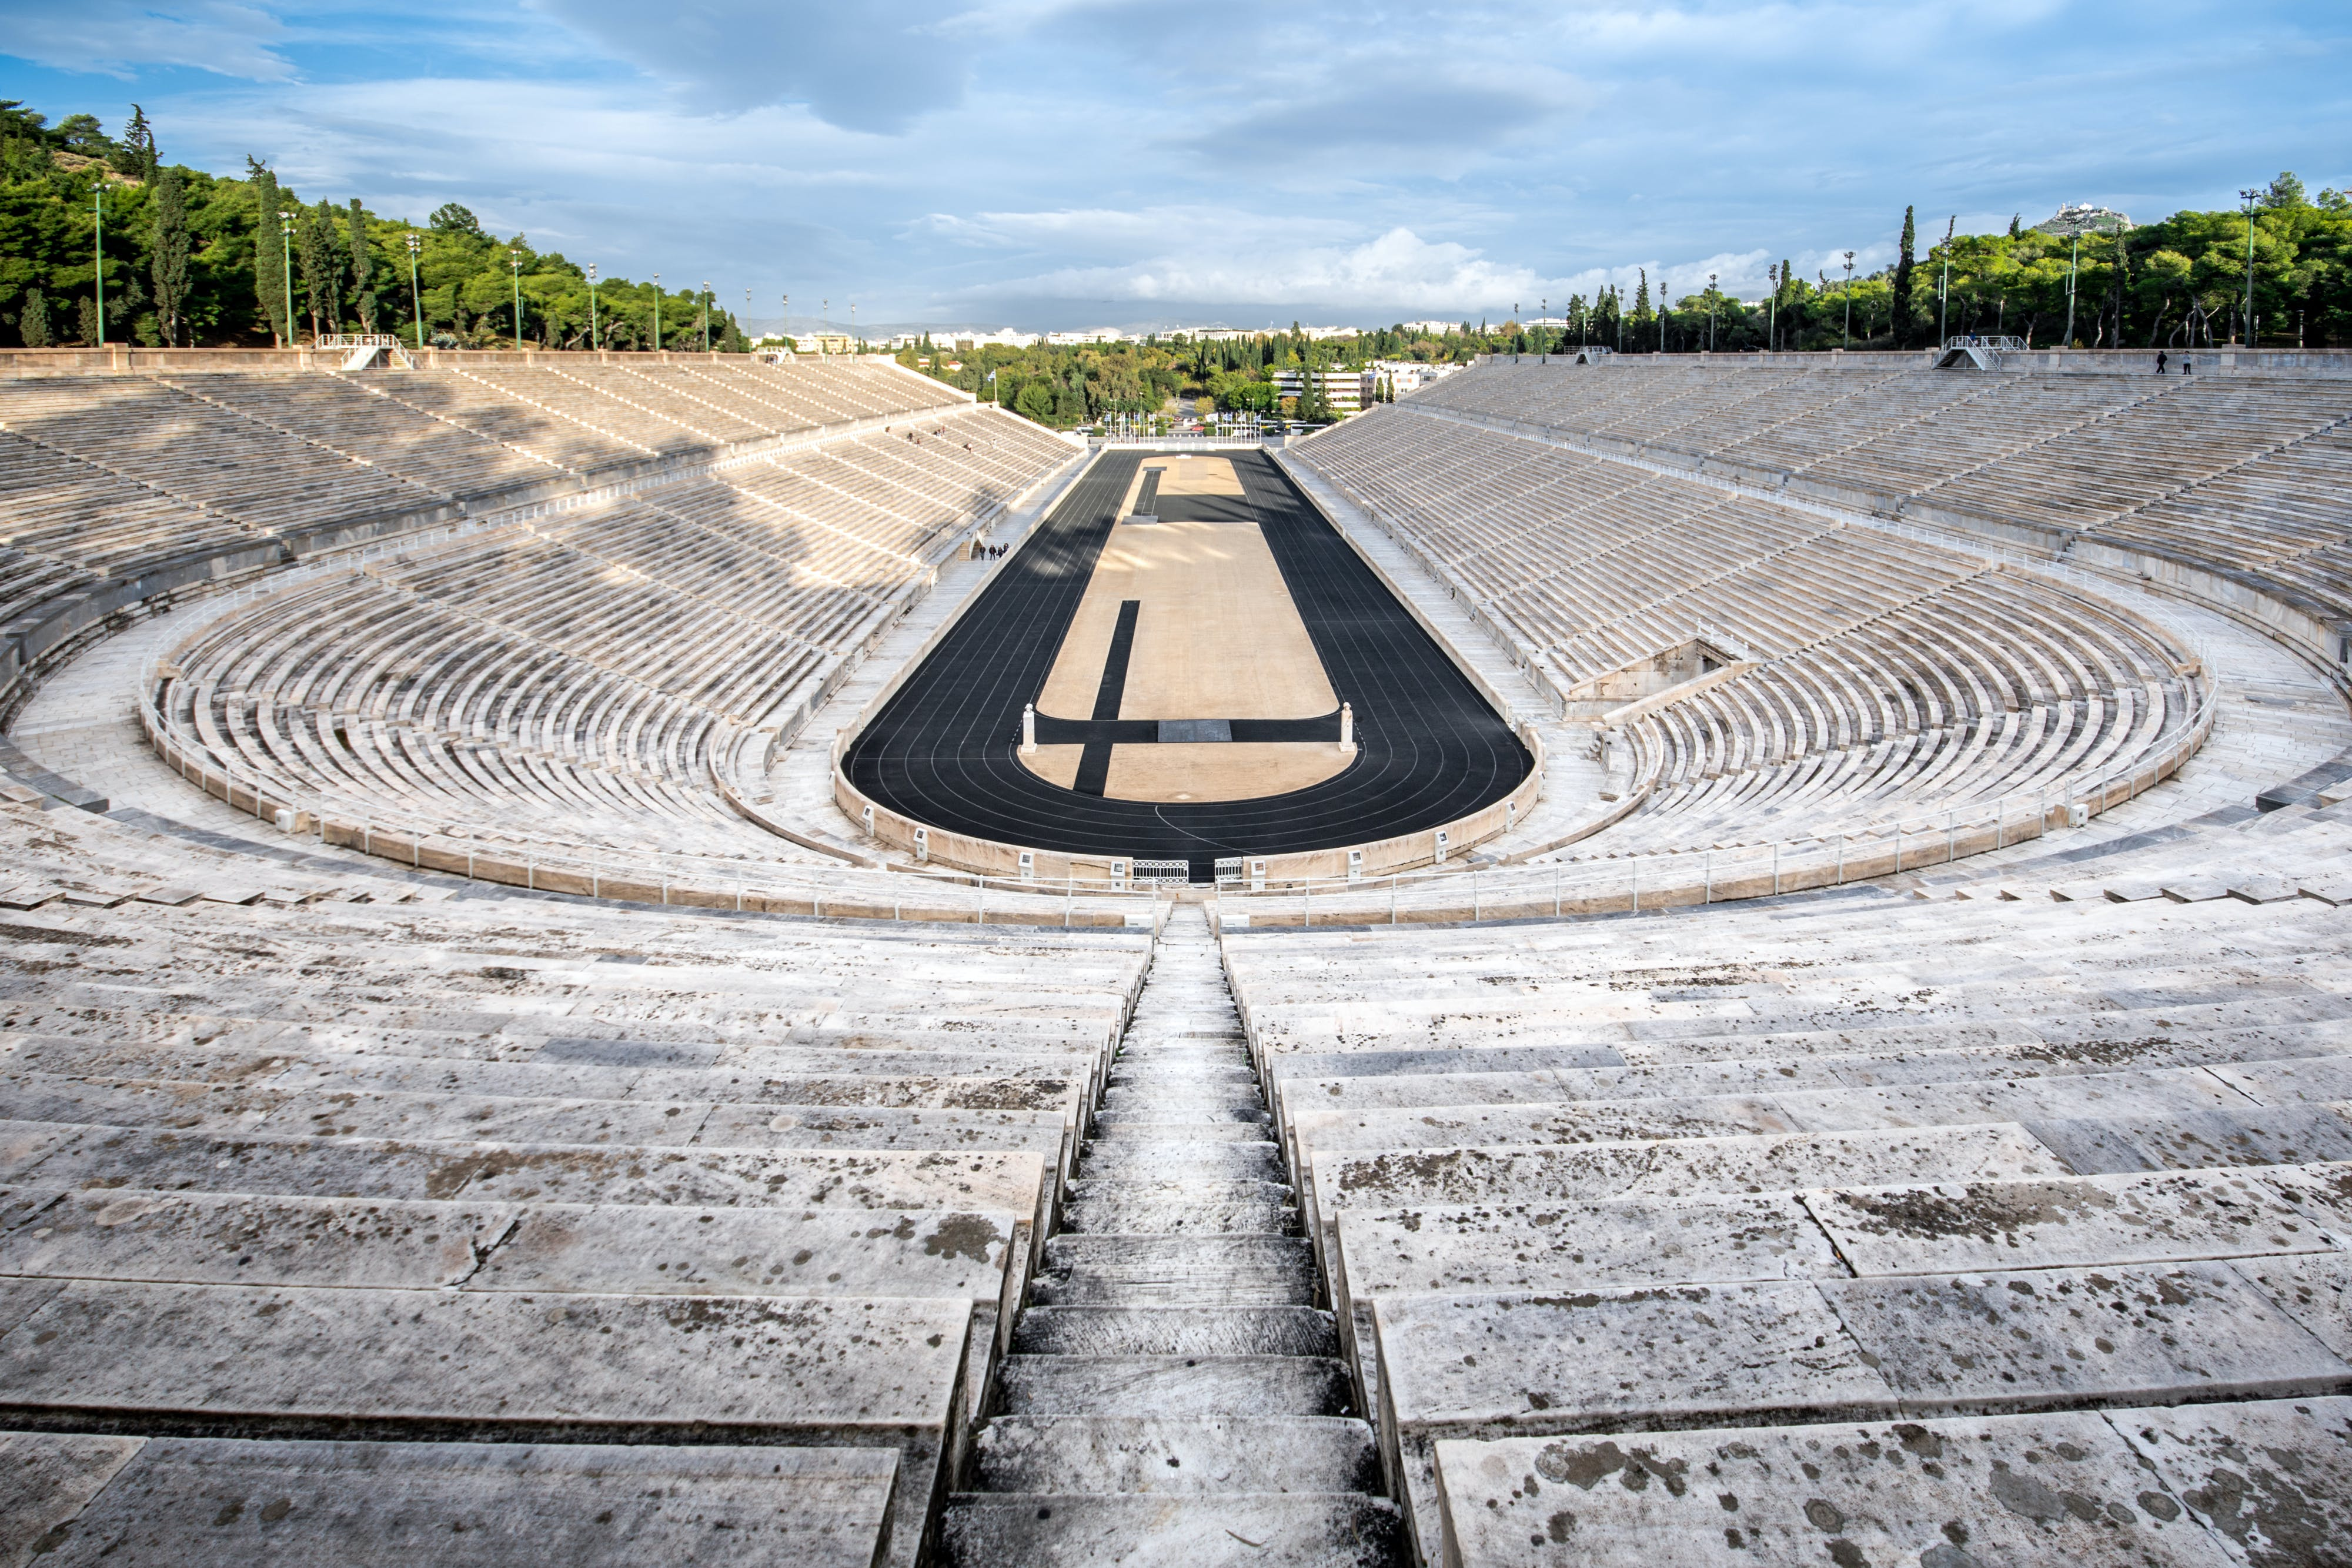 Olympia-Stadion in Athen   griechenland.de